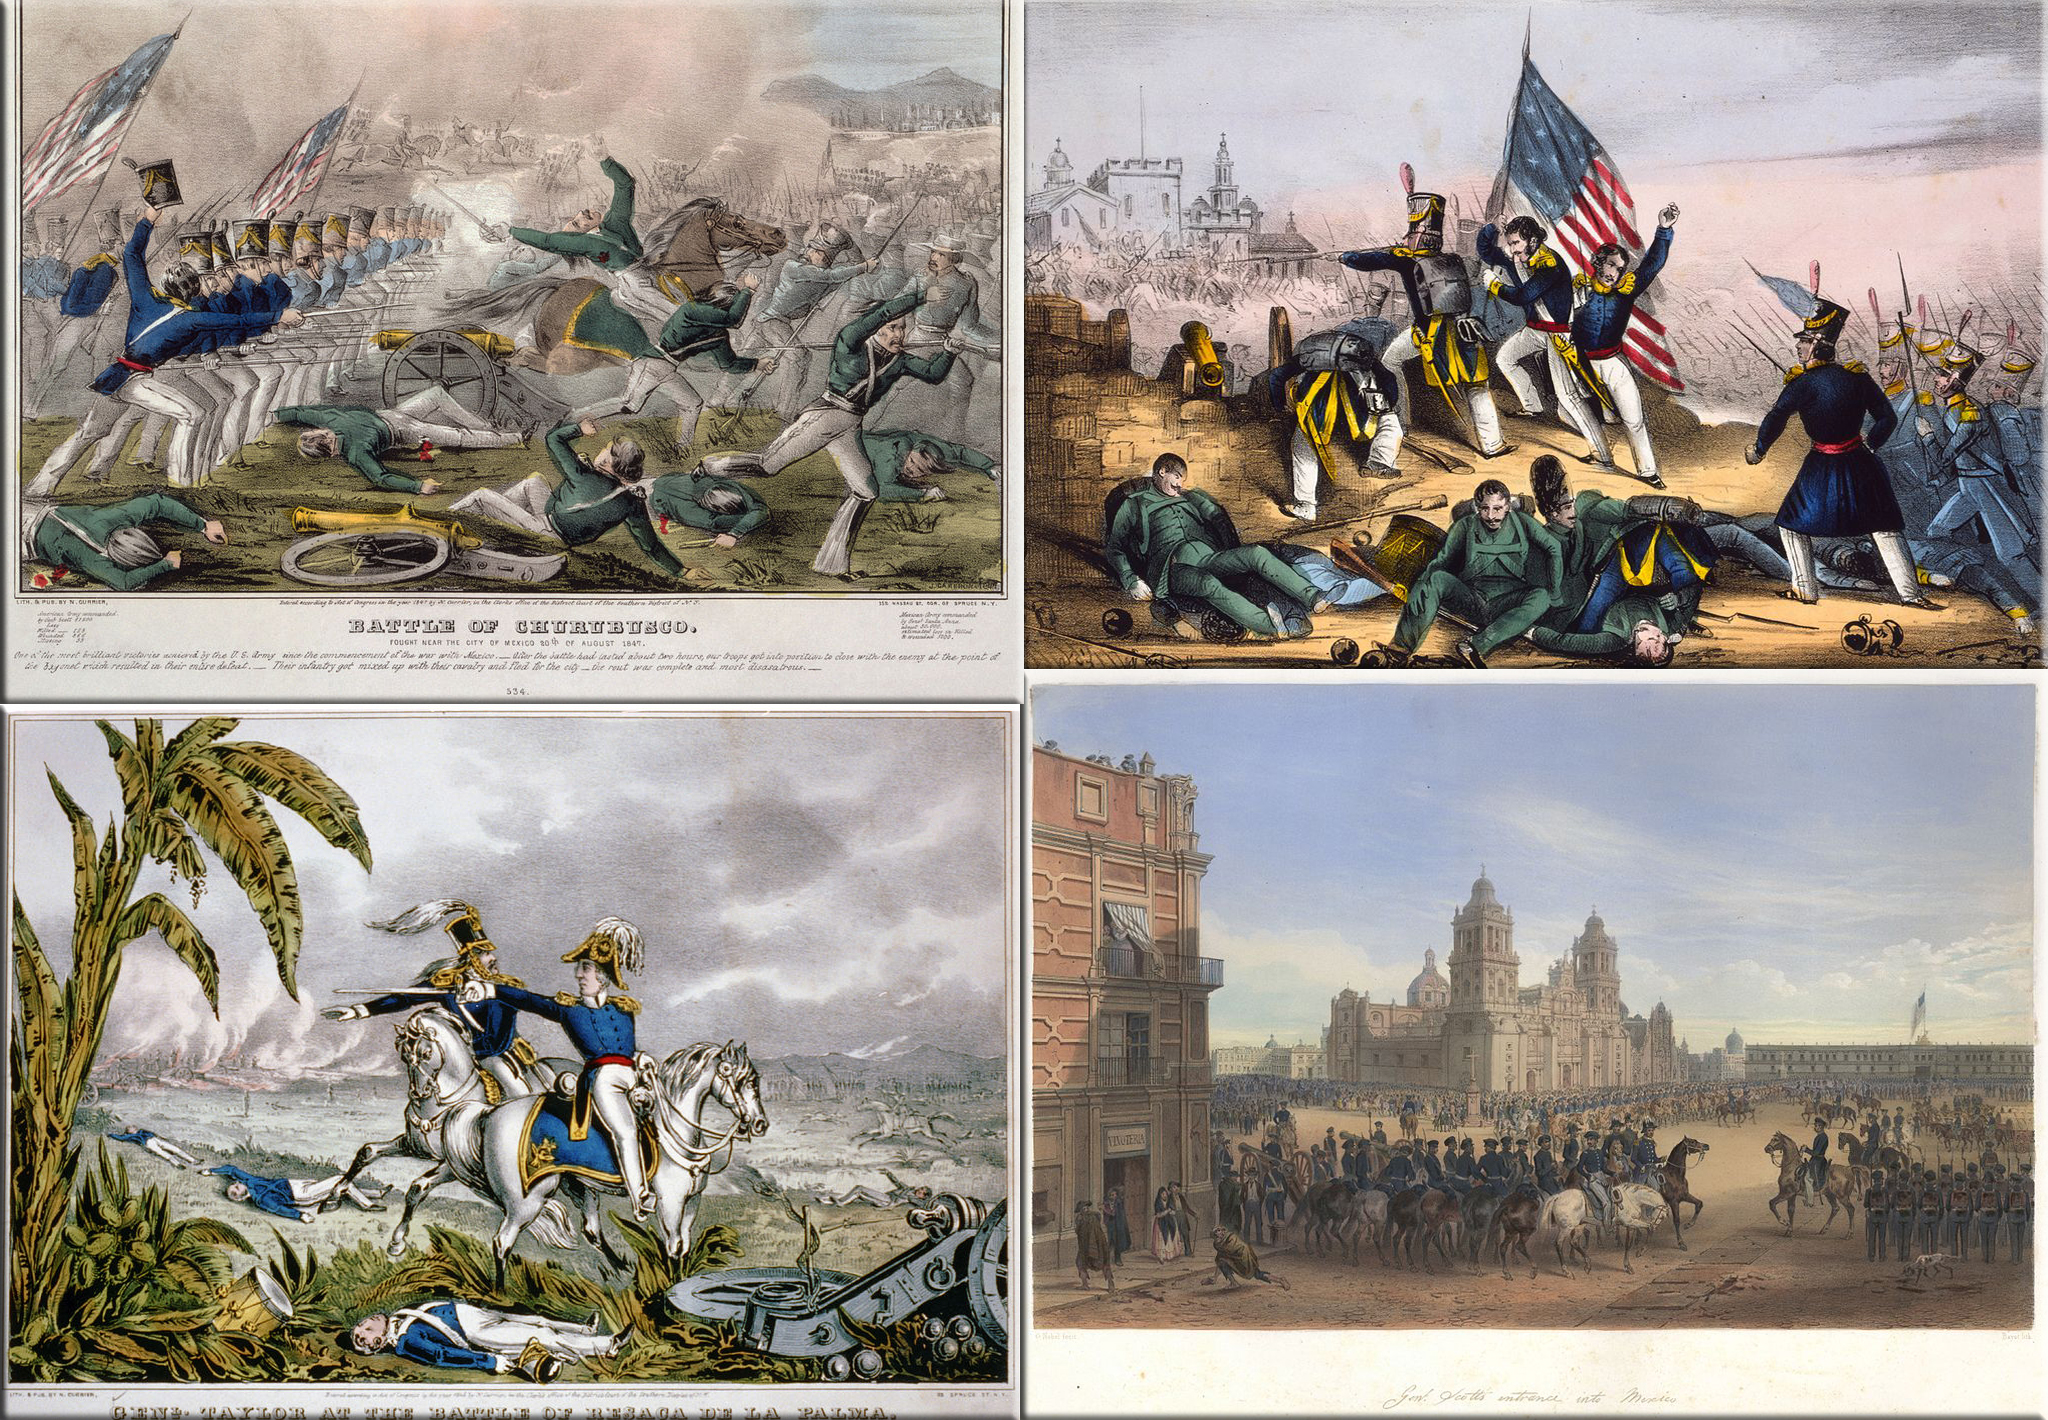 an analysis of the presidency and declaration of war against mexico of james k polk A mexican viewpoint on the war with when the us congress authorized a declaration of war against mexico president james knox polk's war message.